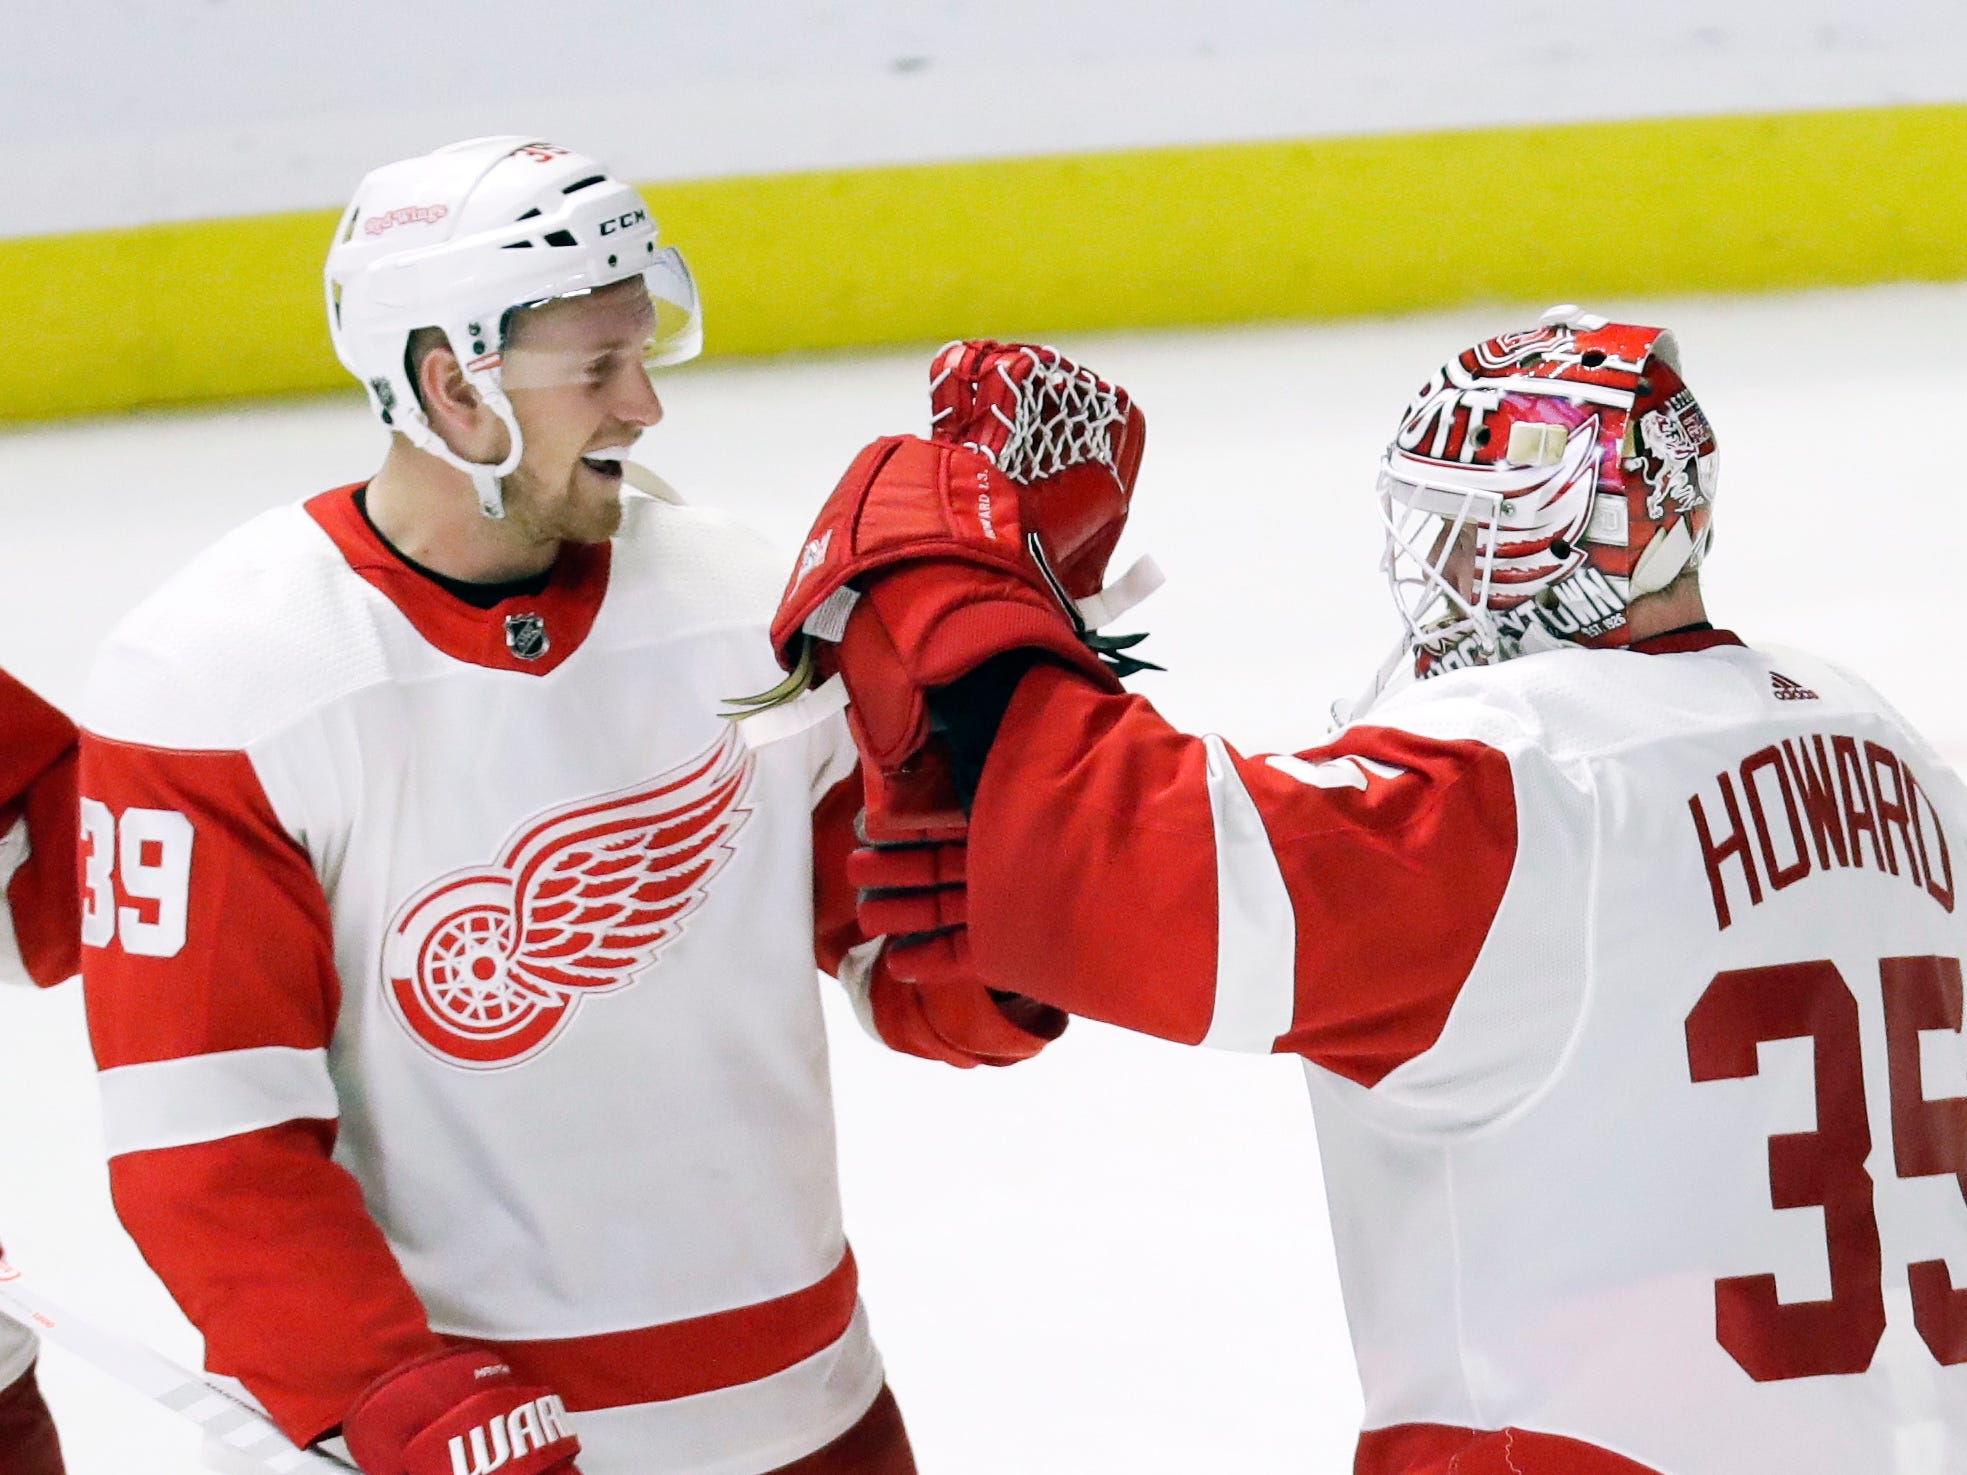 Detroit Red Wings defenseman Mike Green (25) and right wing Anthony Mantha (39) congratulate goaltender Jimmy Howard (35) after the Red Wings defeated the Nashville Predators 3-2.